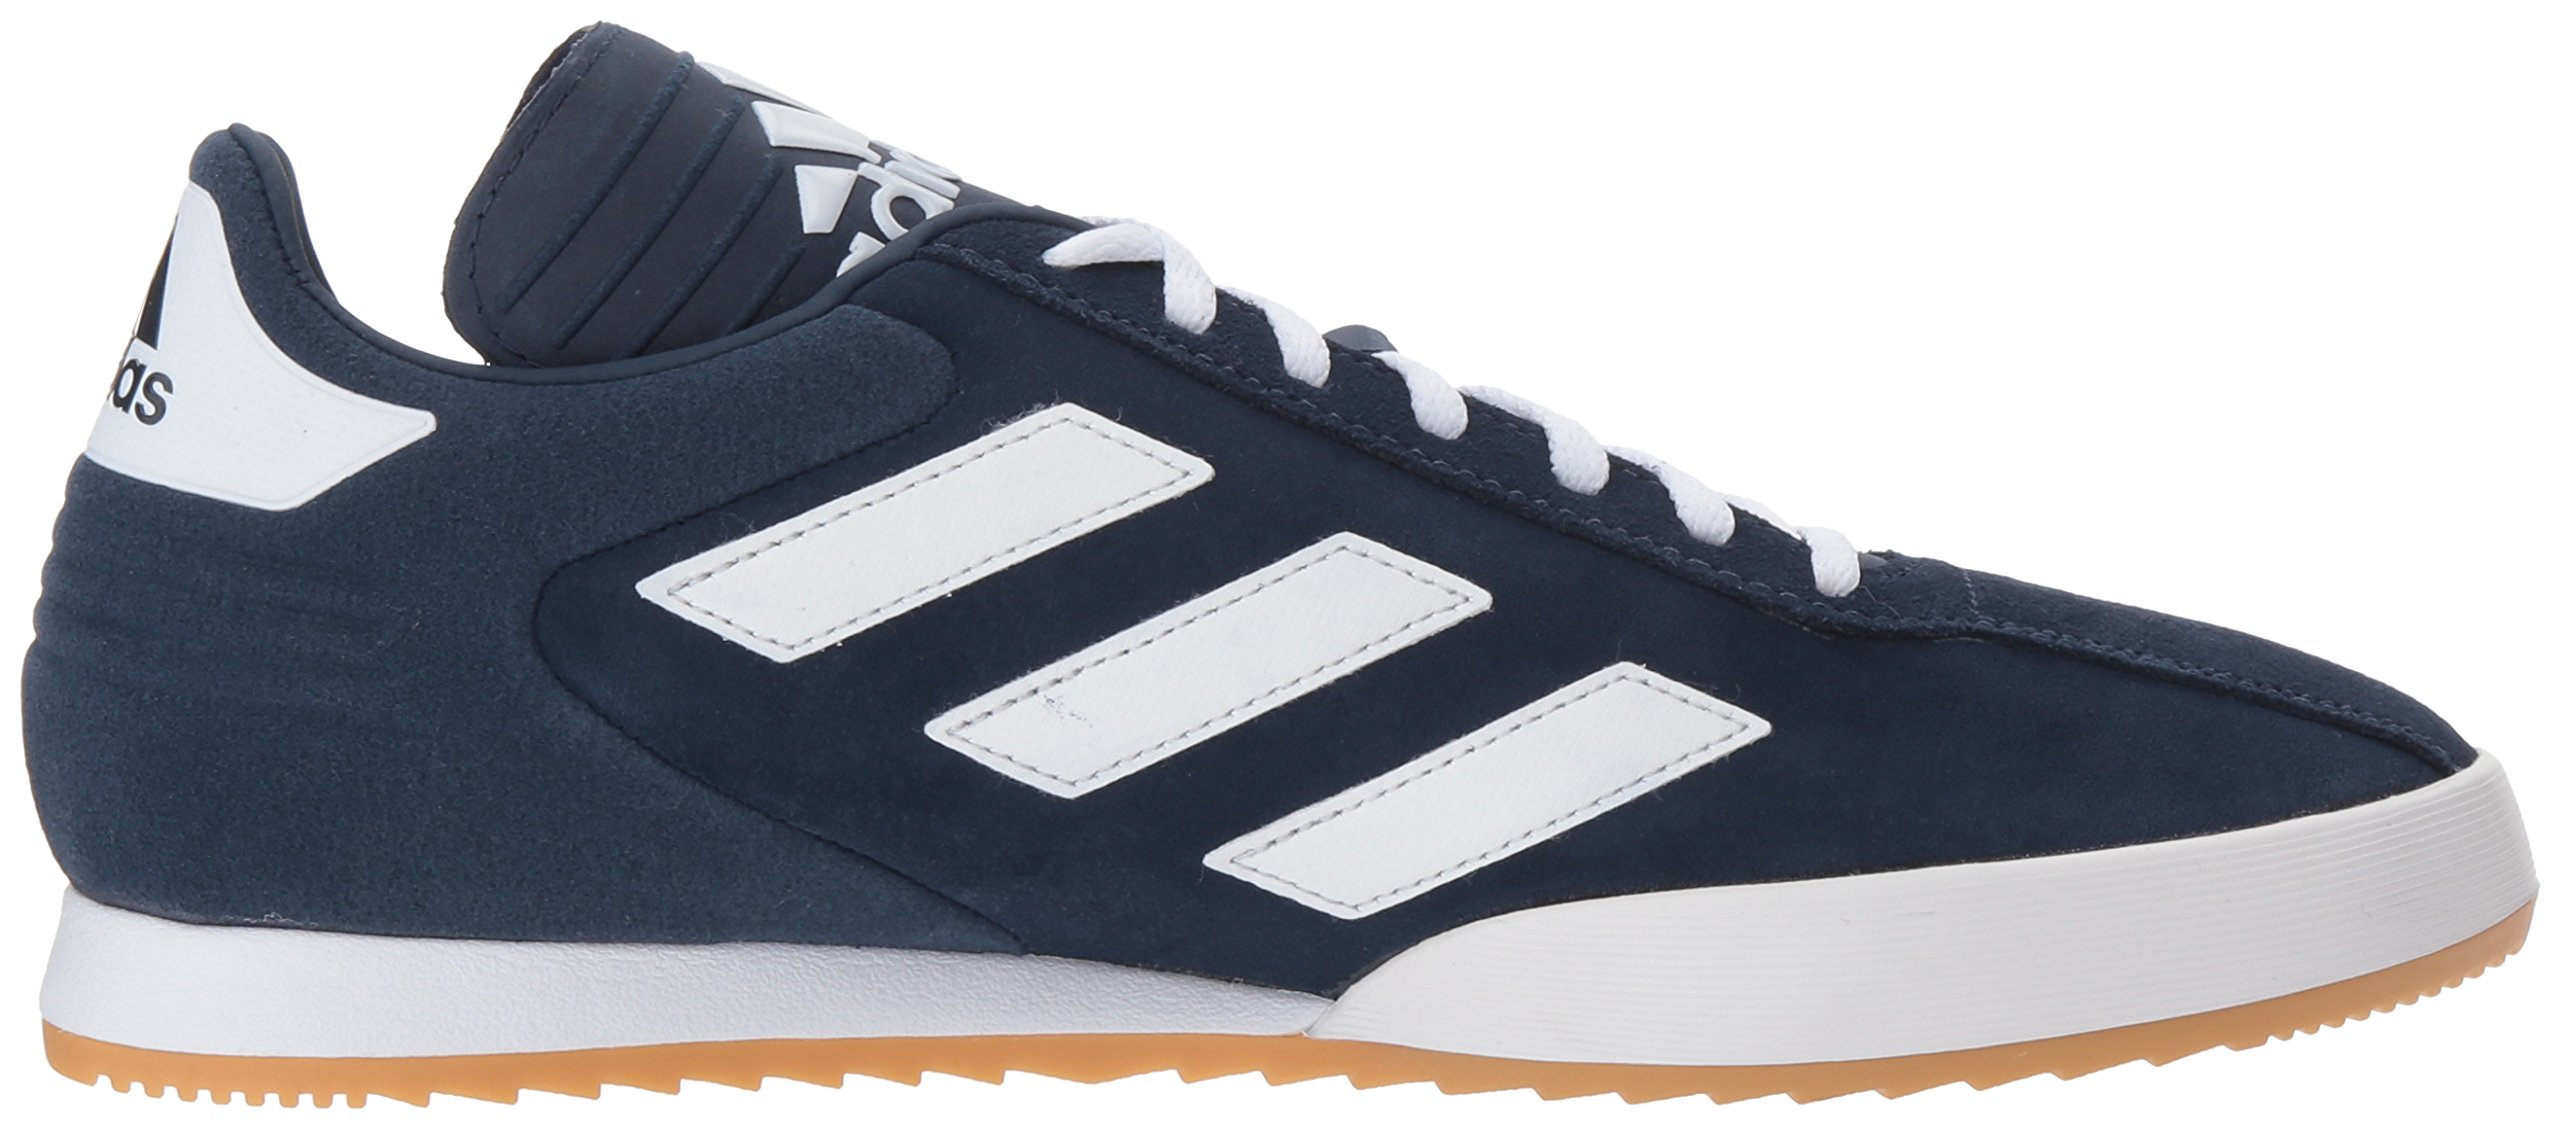 adidas Men's Copa Super Soccer Shoe White/Collegiate Navy, 7 M US by adidas (Image #7)